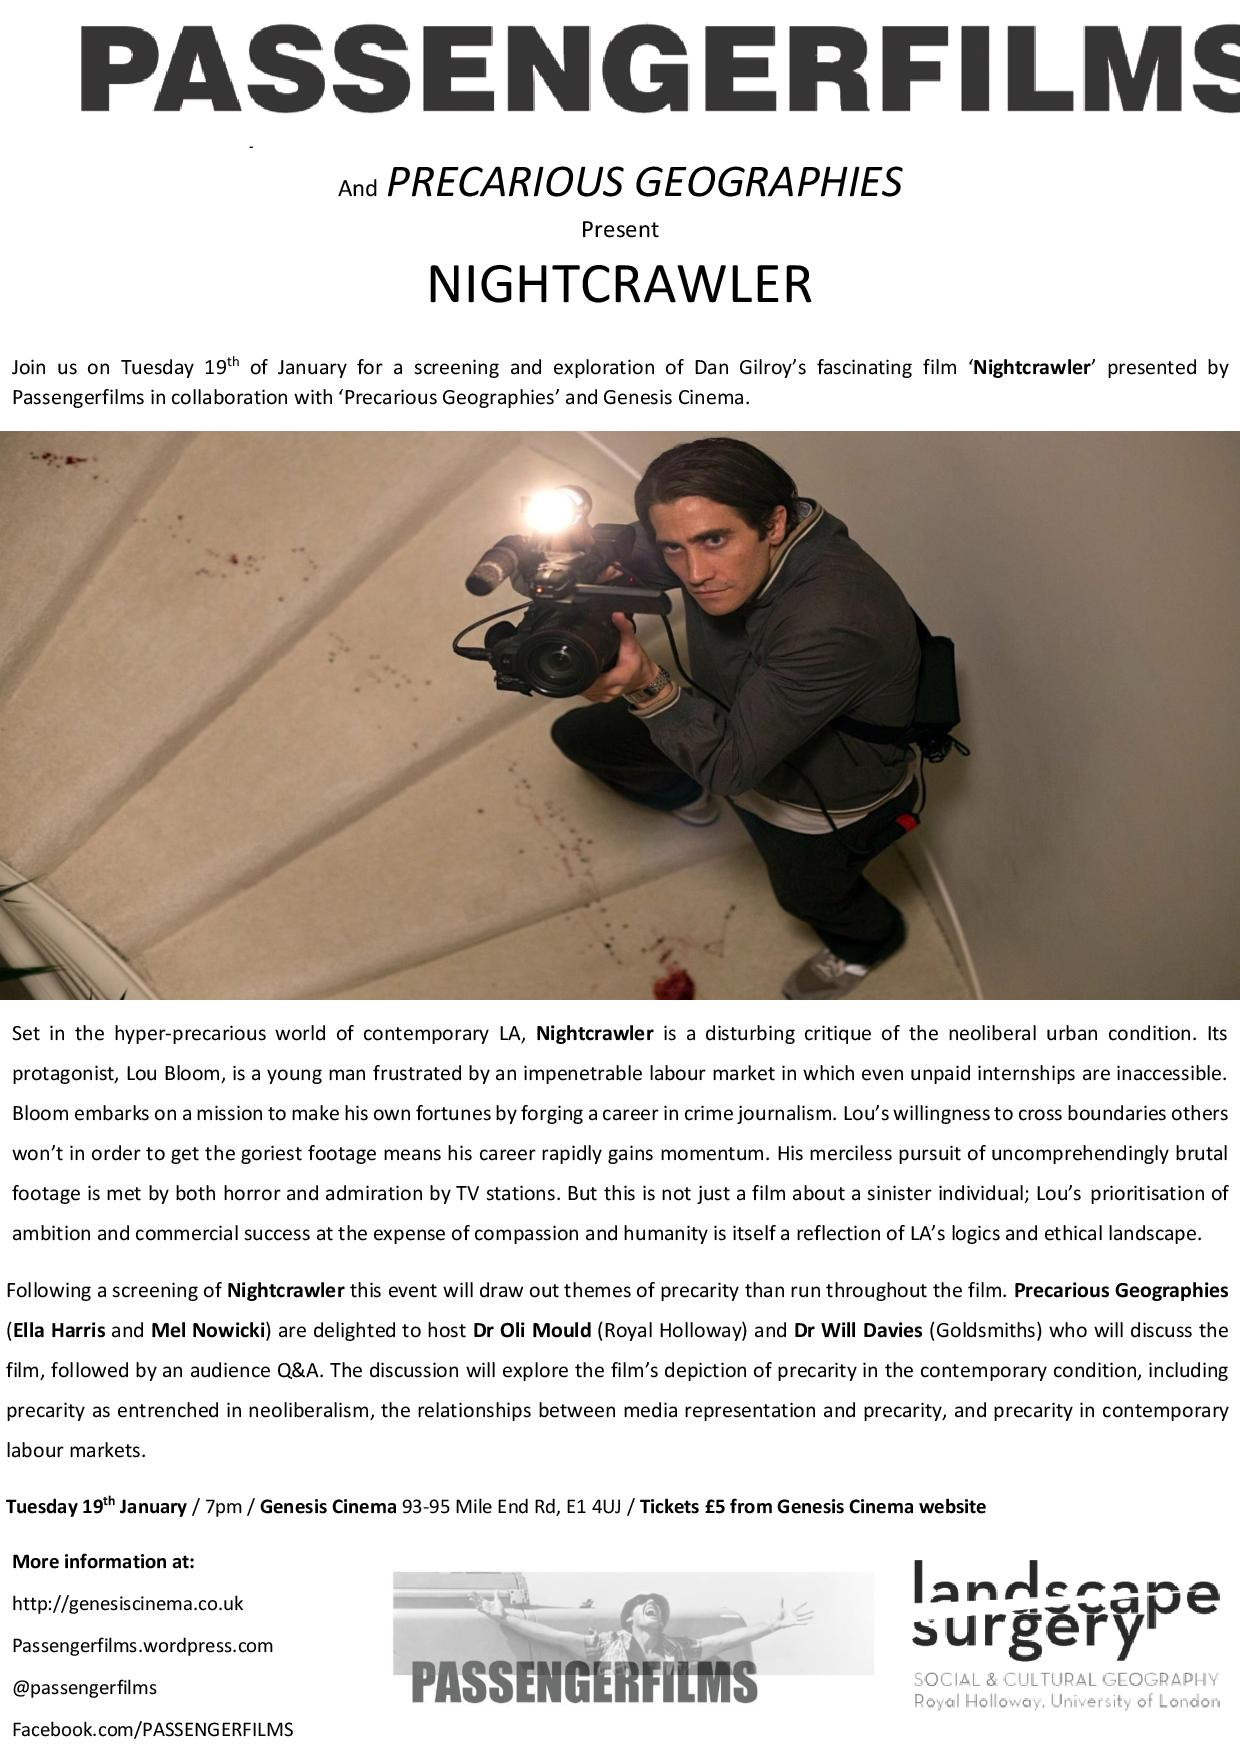 Precarious Geographies and Passenger Films Present Nightcrawler Poster -page-001